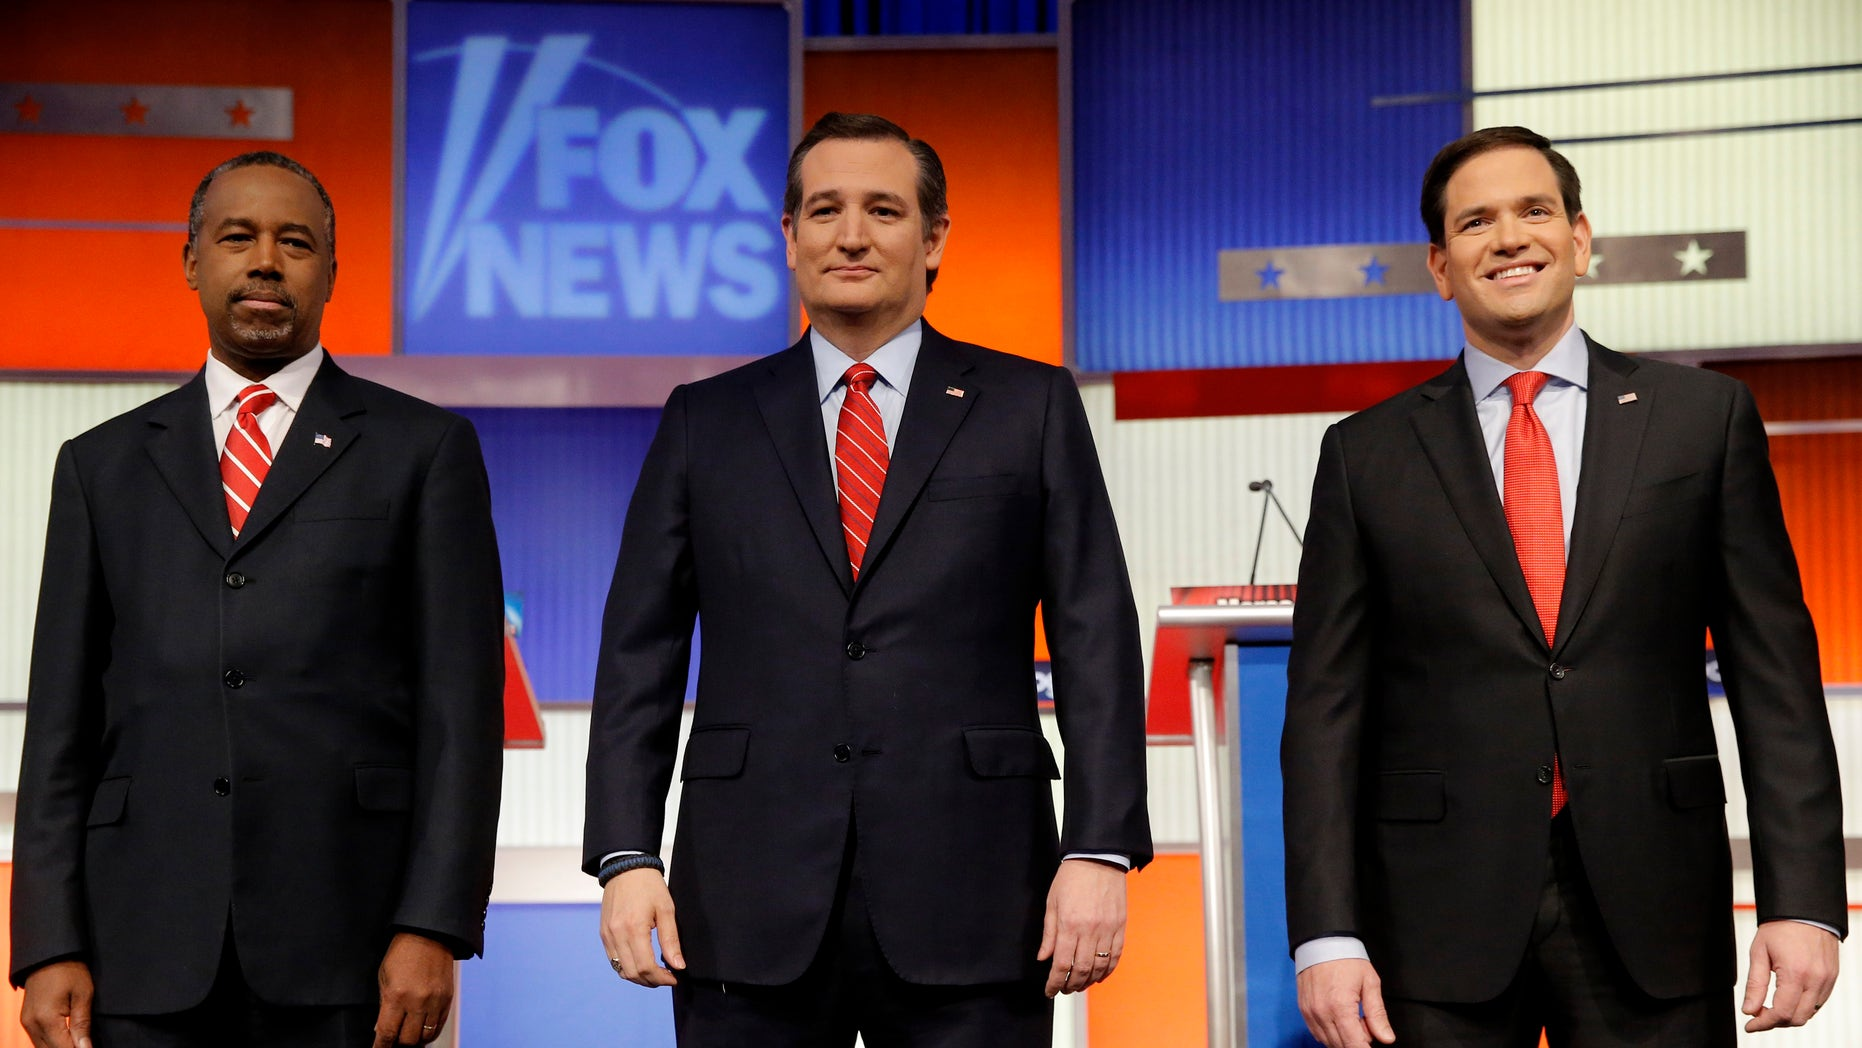 Republican U.S. presidential candidates (L-R) Dr. Ben Carson, Senator Ted Cruz and Senator Marco Rubio stand together onstage at the start of the debate held by Fox News for the top 2016 U.S. Republican presidential candidates in Des Moines, Iowa January 28, 2016. REUTERS/Jim Young